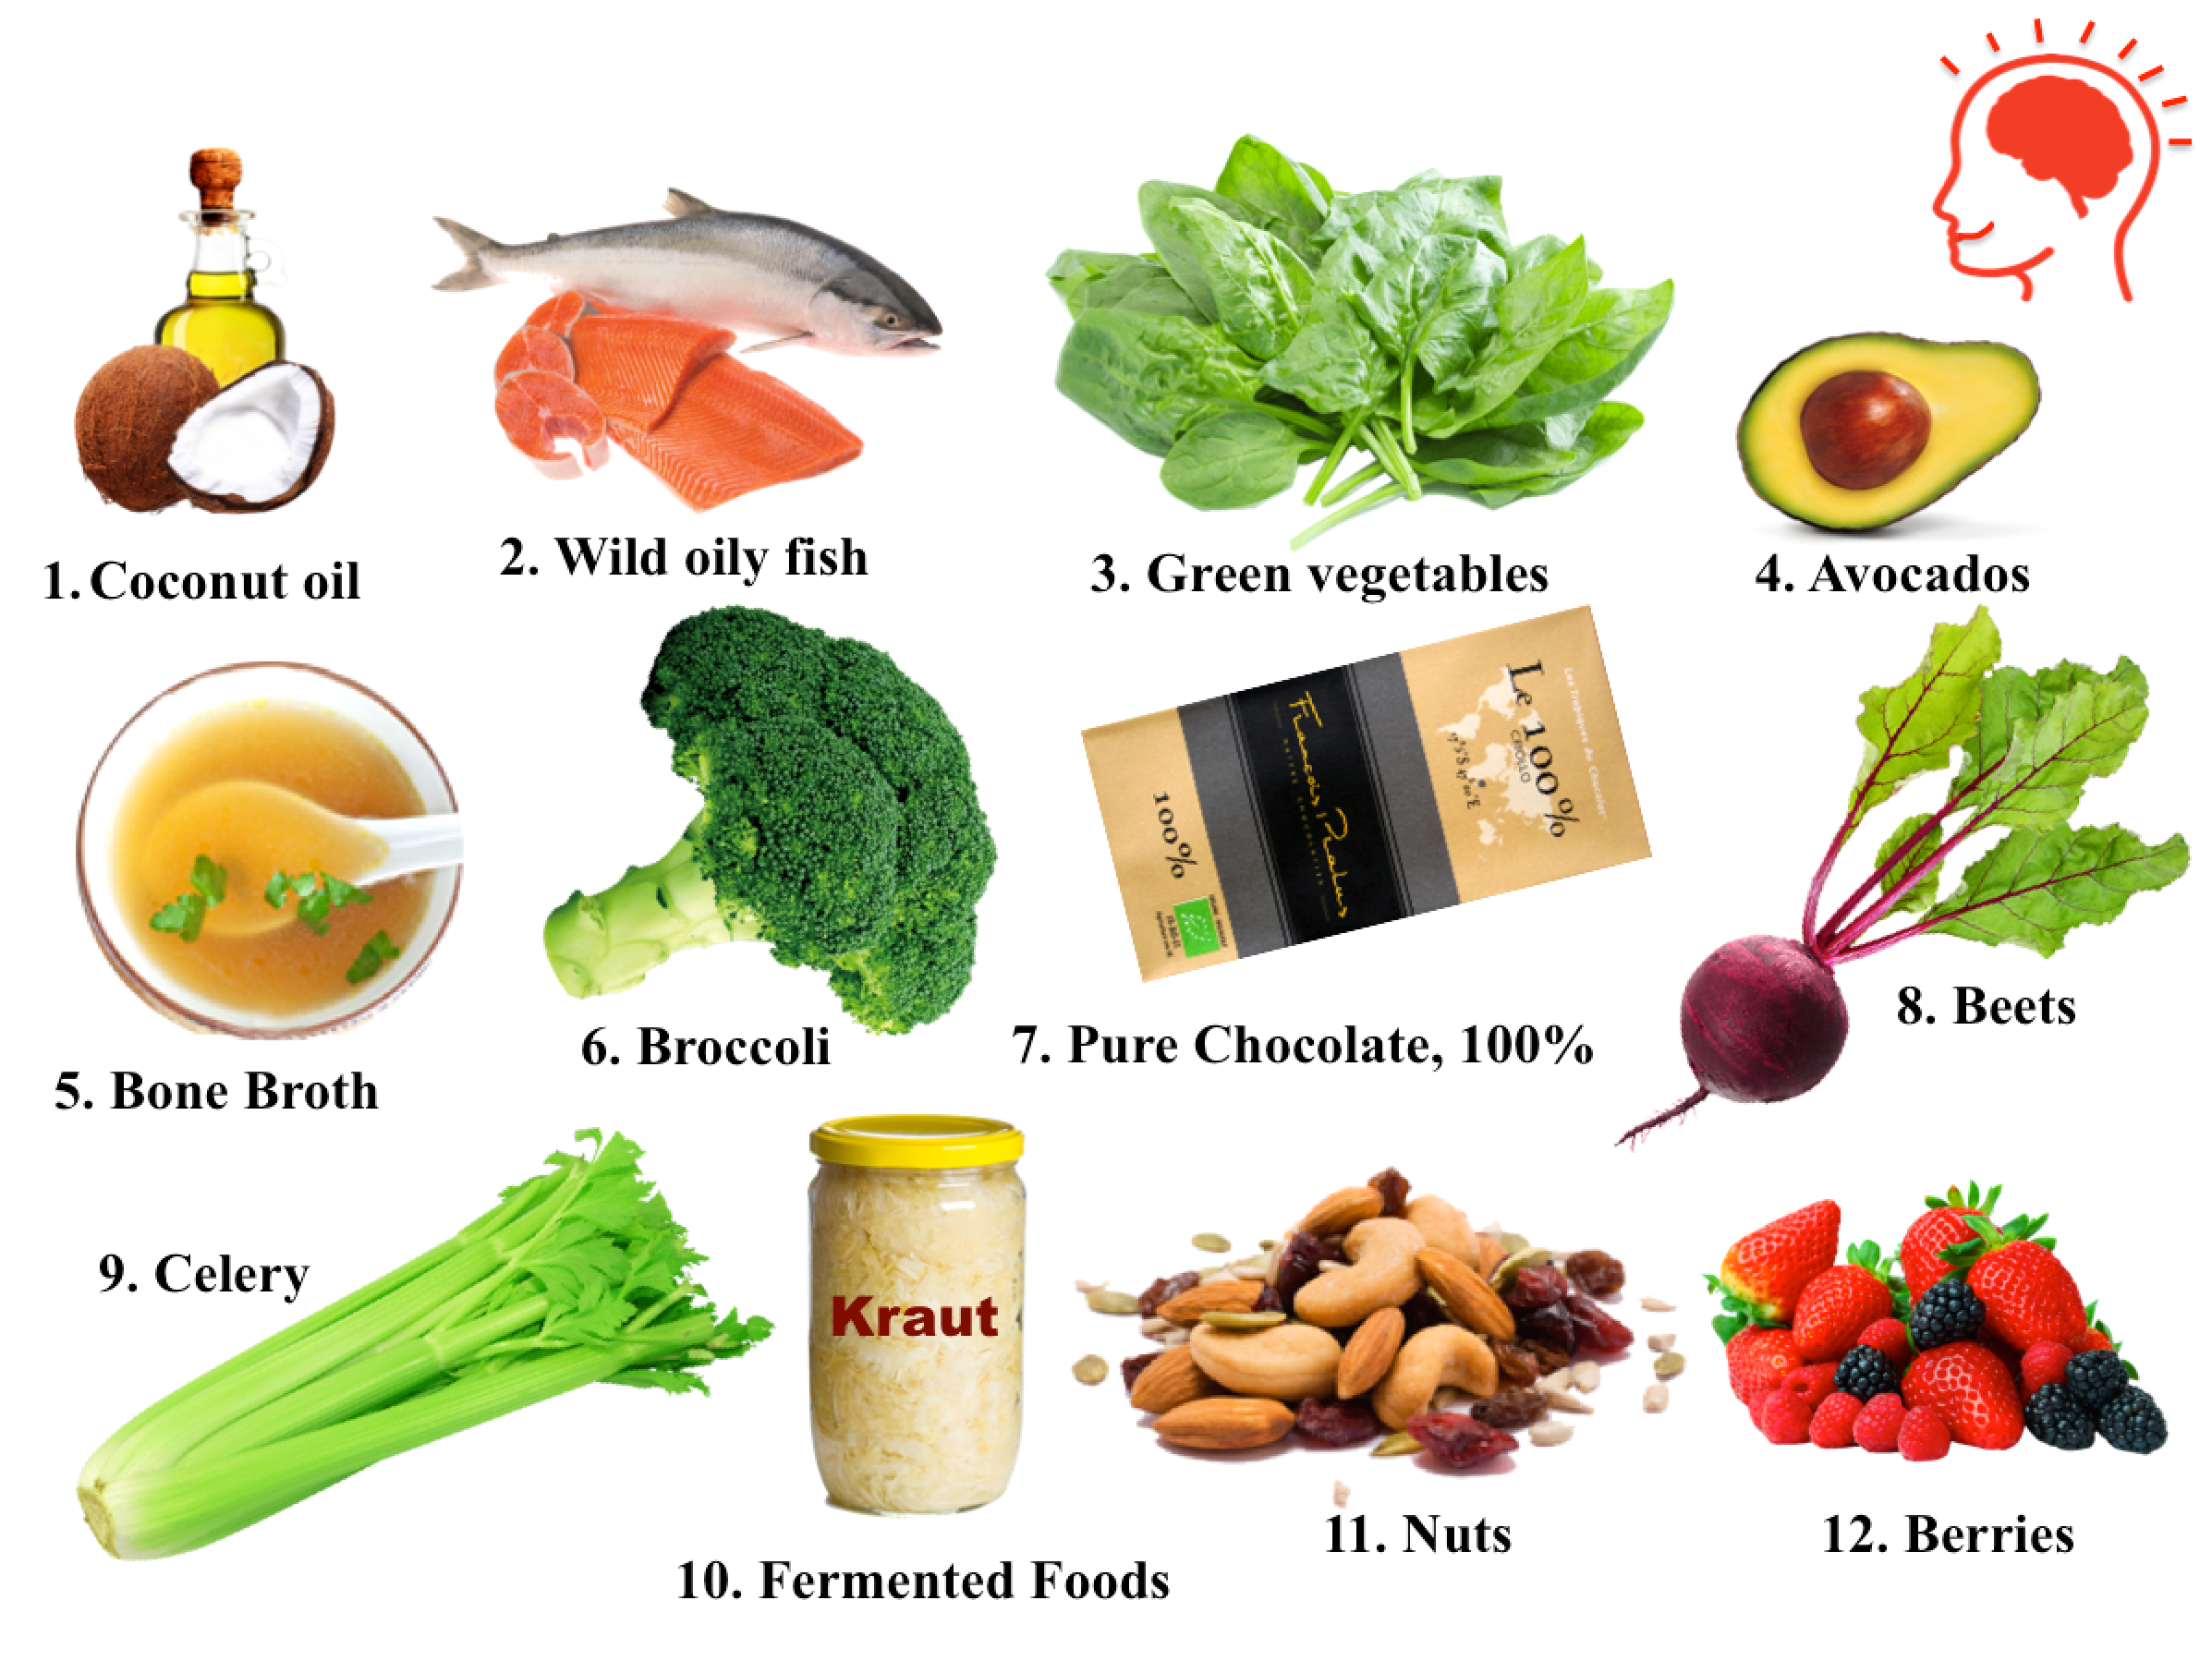 Top 12 Foods For Your Brain Jane S Healthy Kitchen